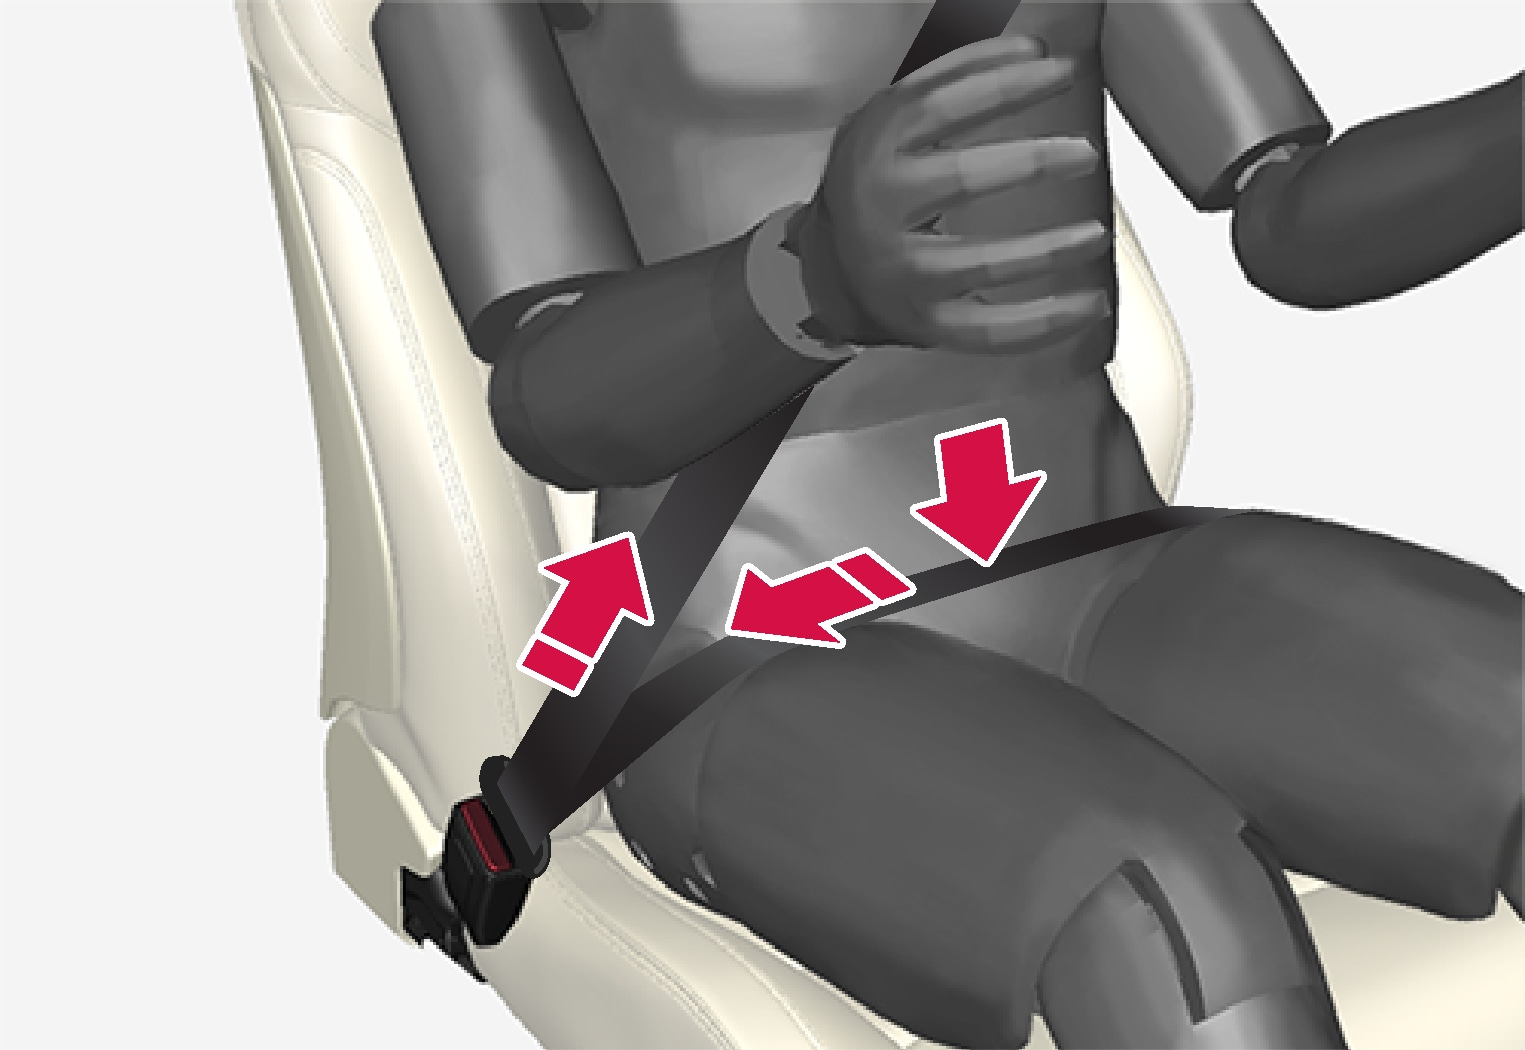 P5-1507–Safety–Seat belt over hips